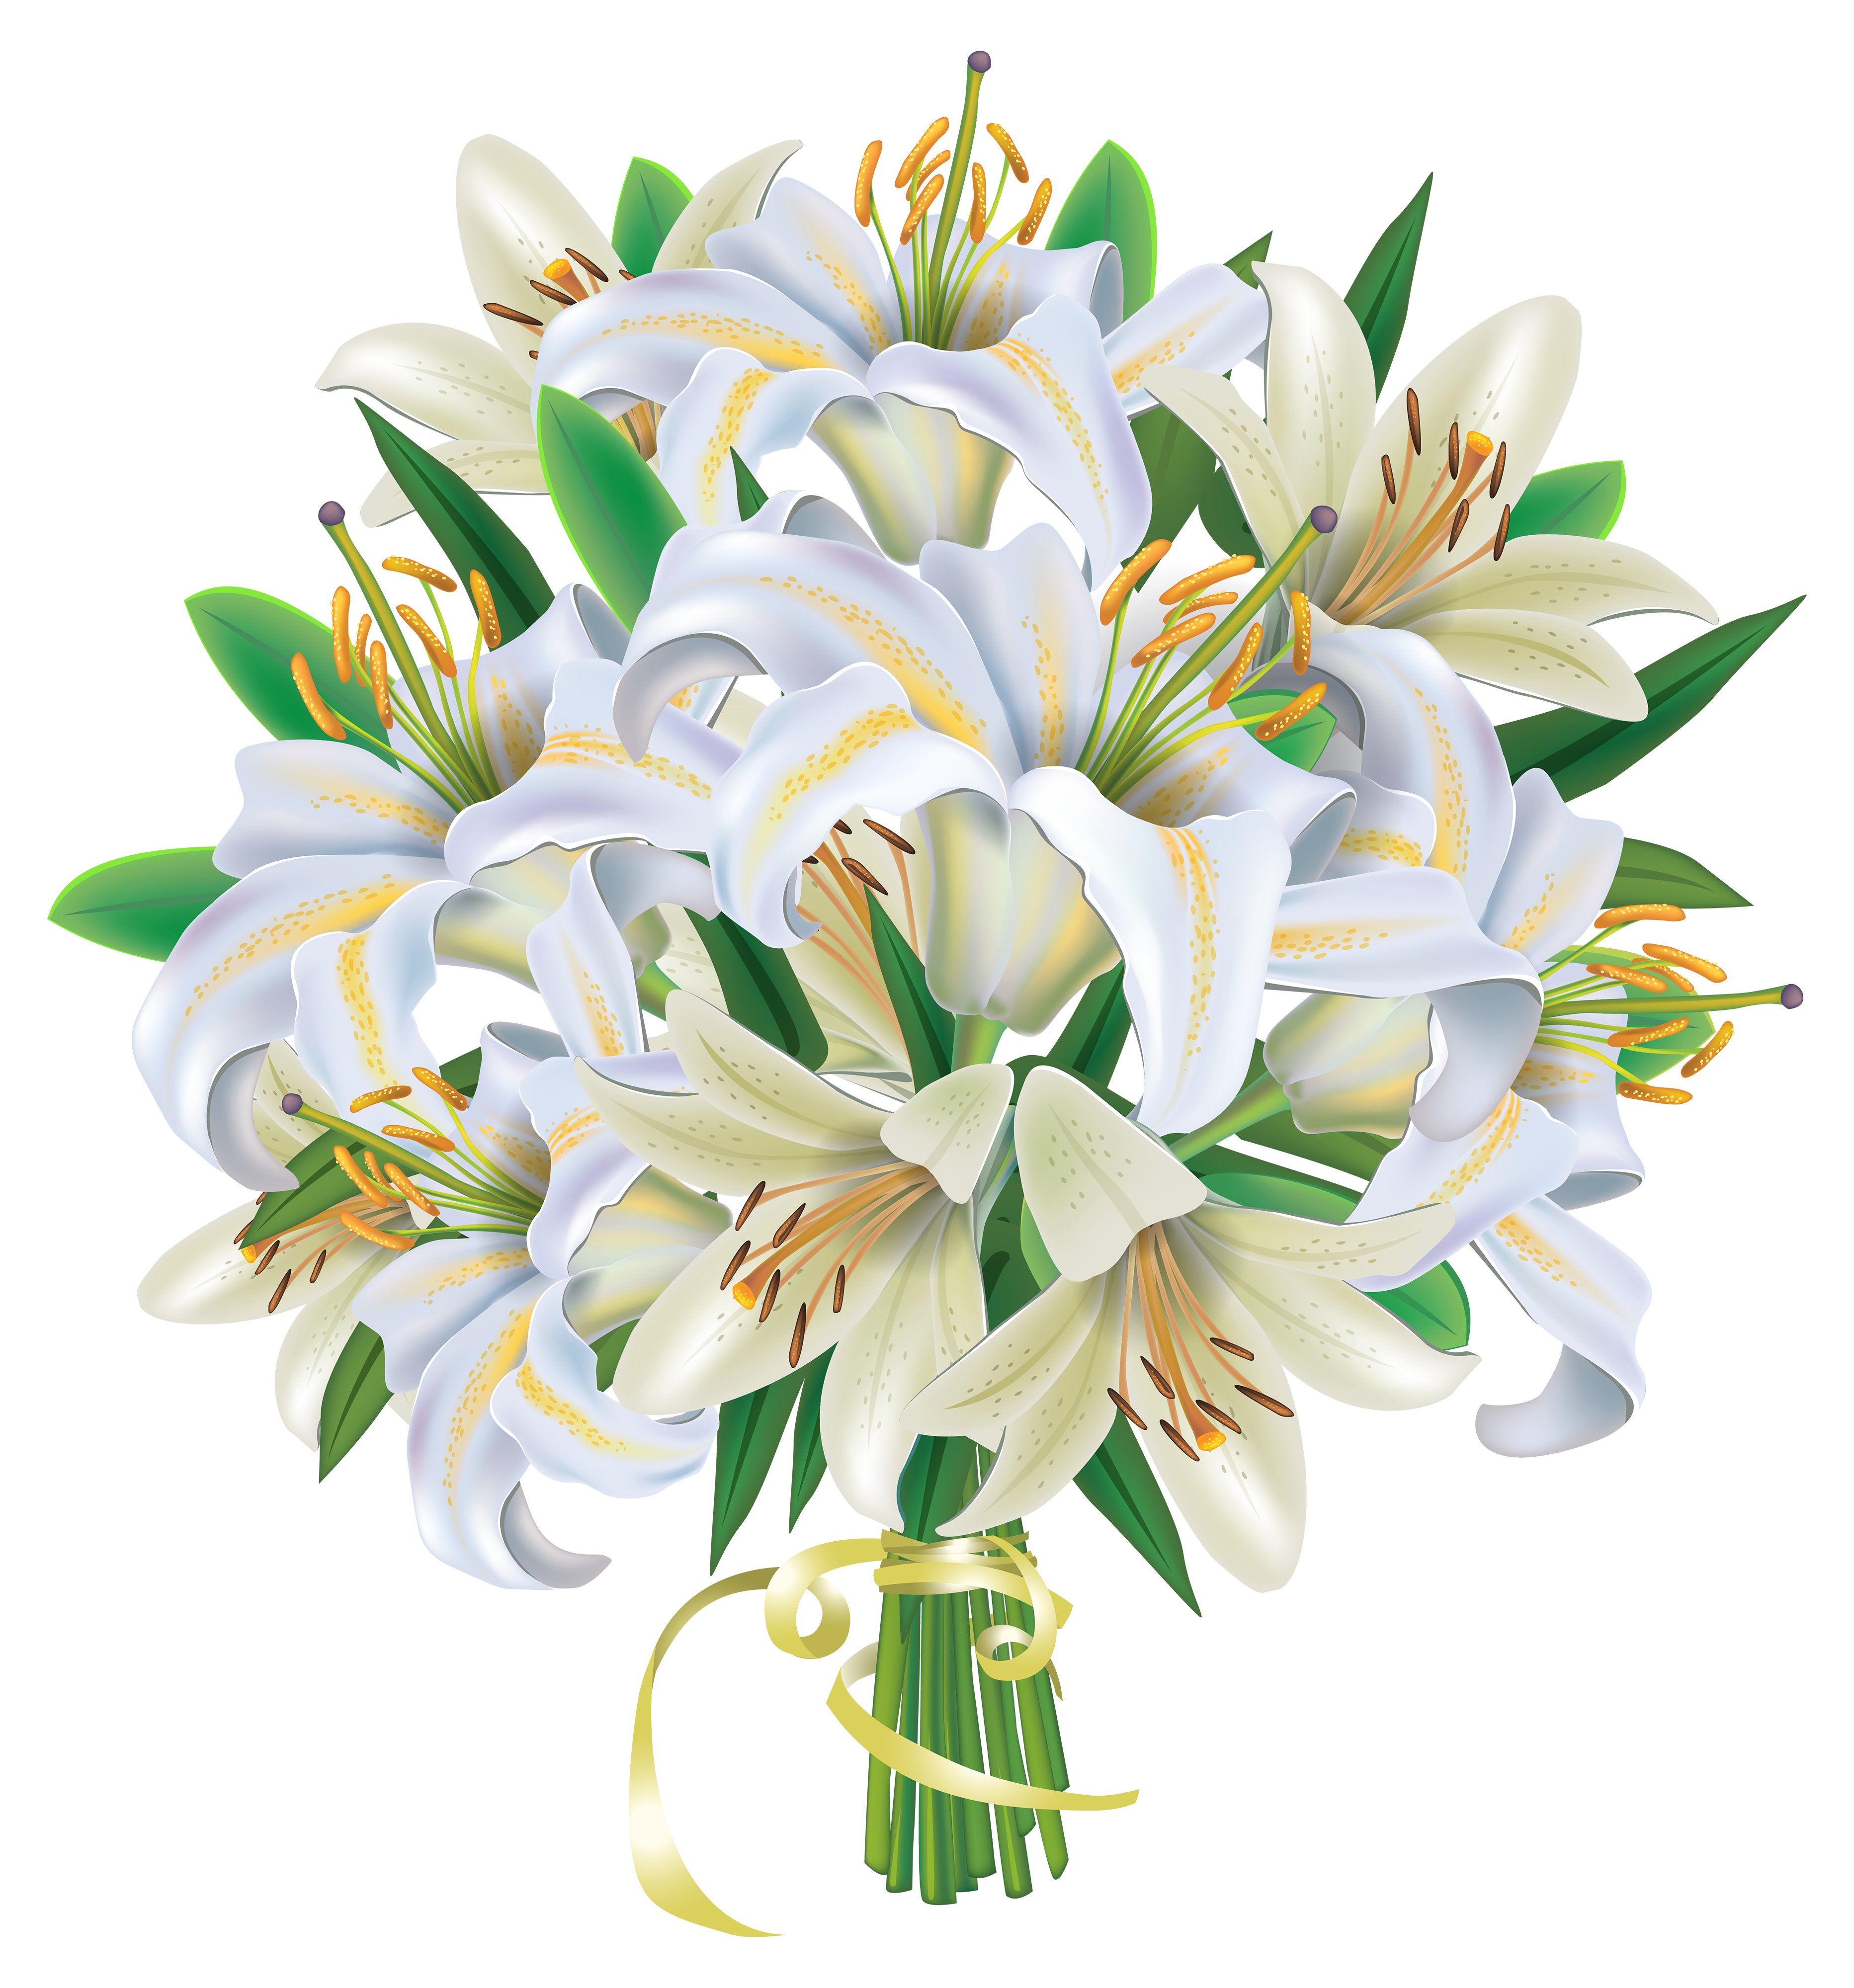 Elower clipart white lily Clipart clipart frame art bouquet